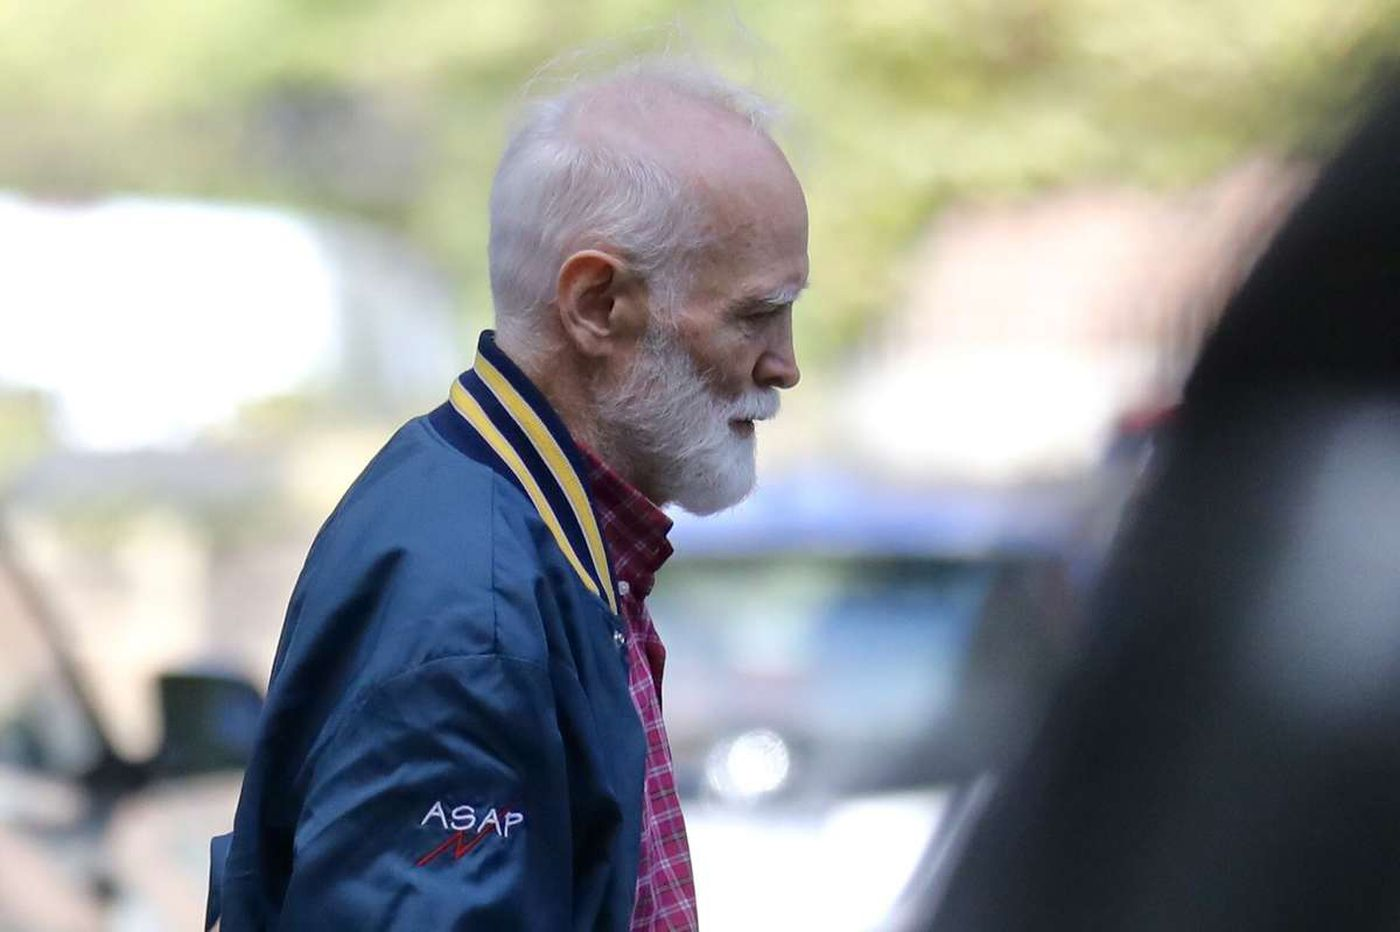 Acclaimed Philly scholastic chess coach sexually abused boys in 1980s, former pupils say